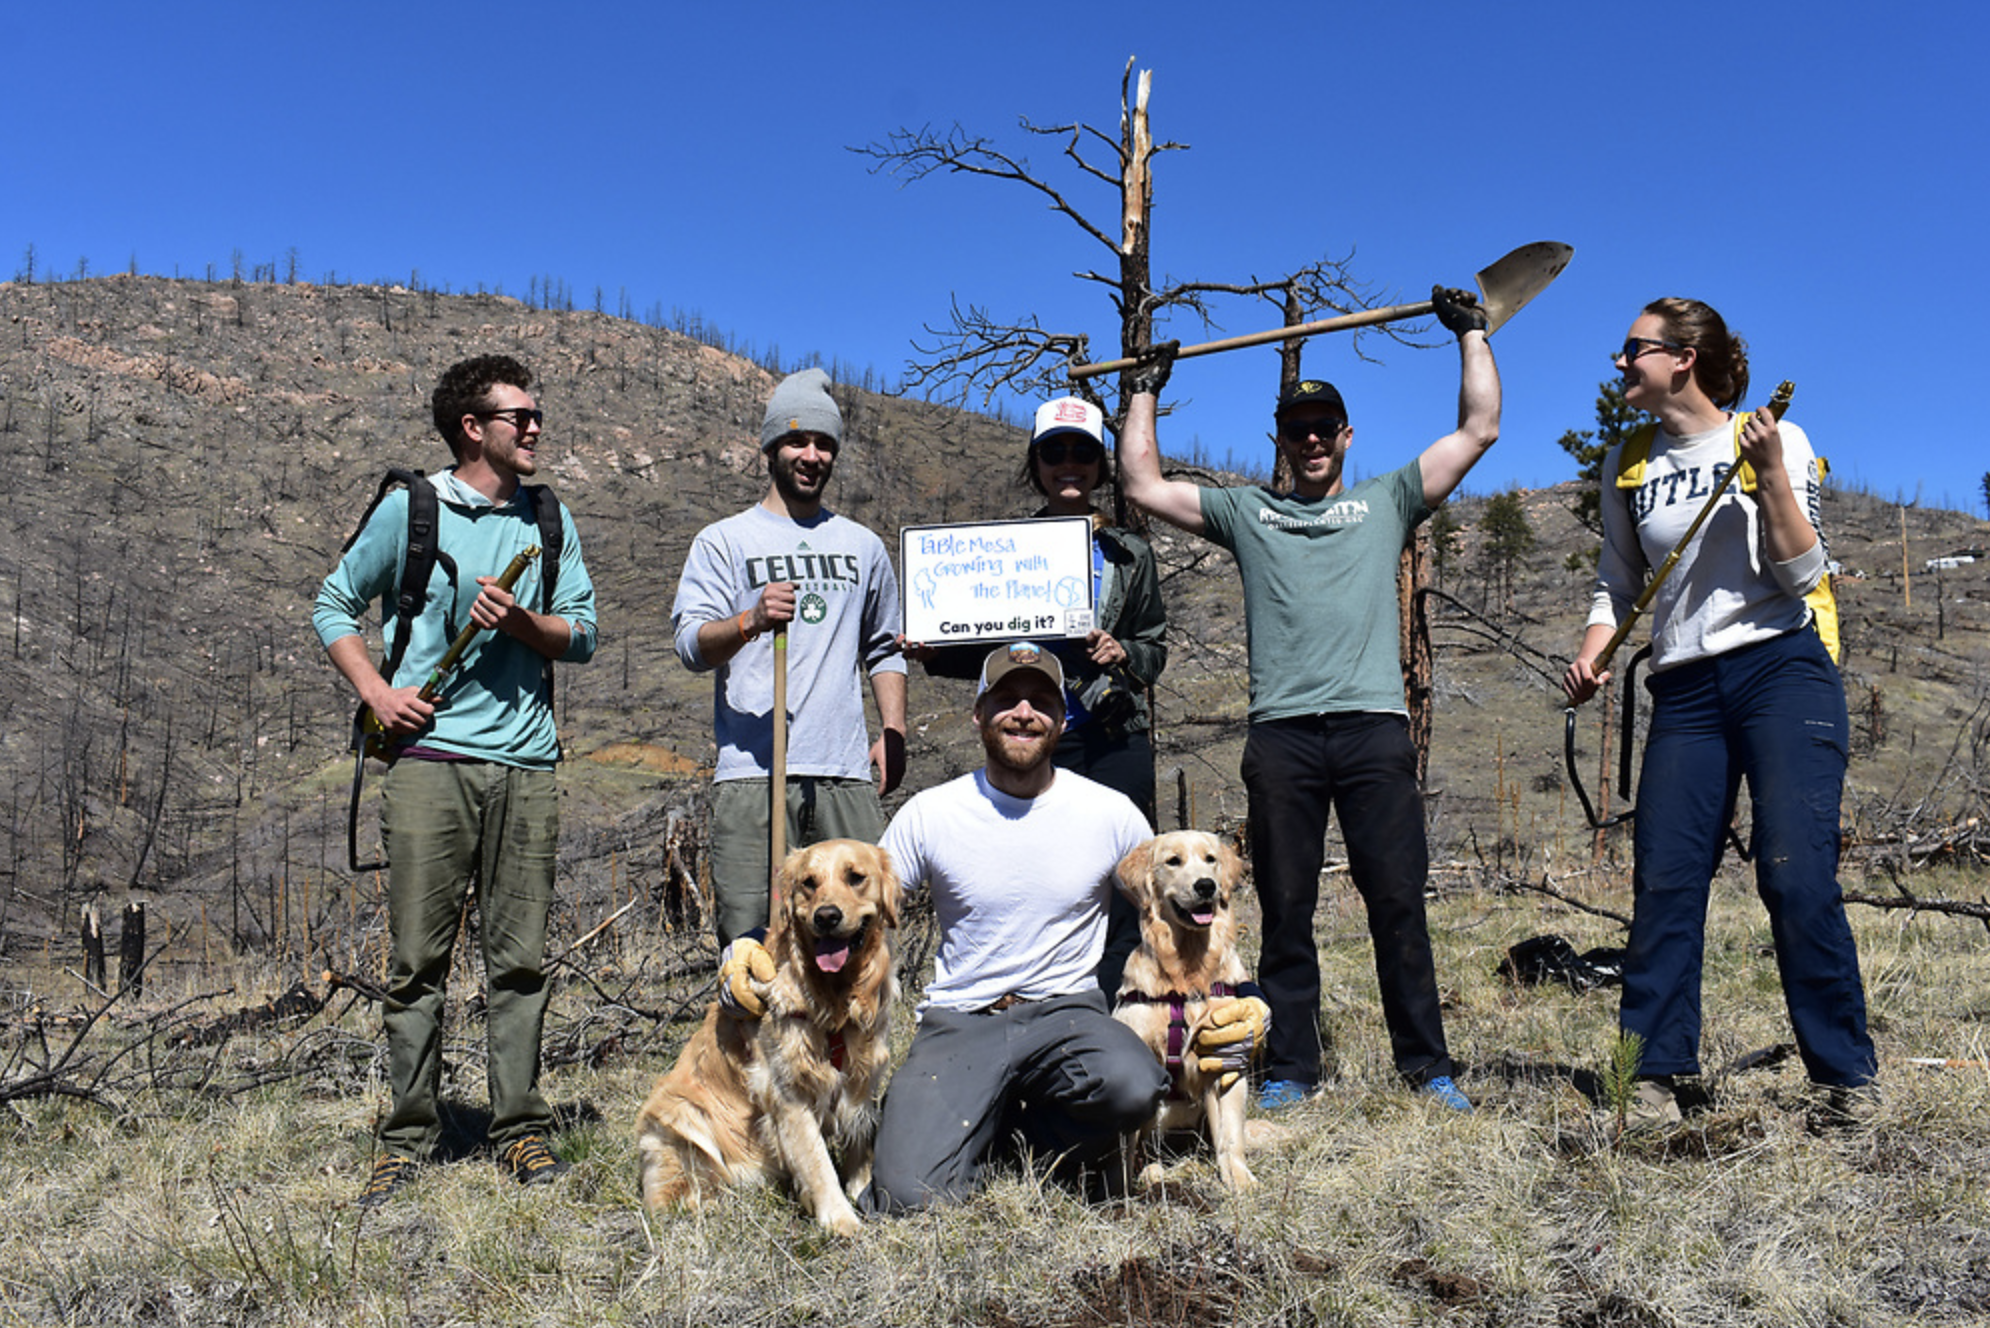 group of people with gold retriever dogs planting trees